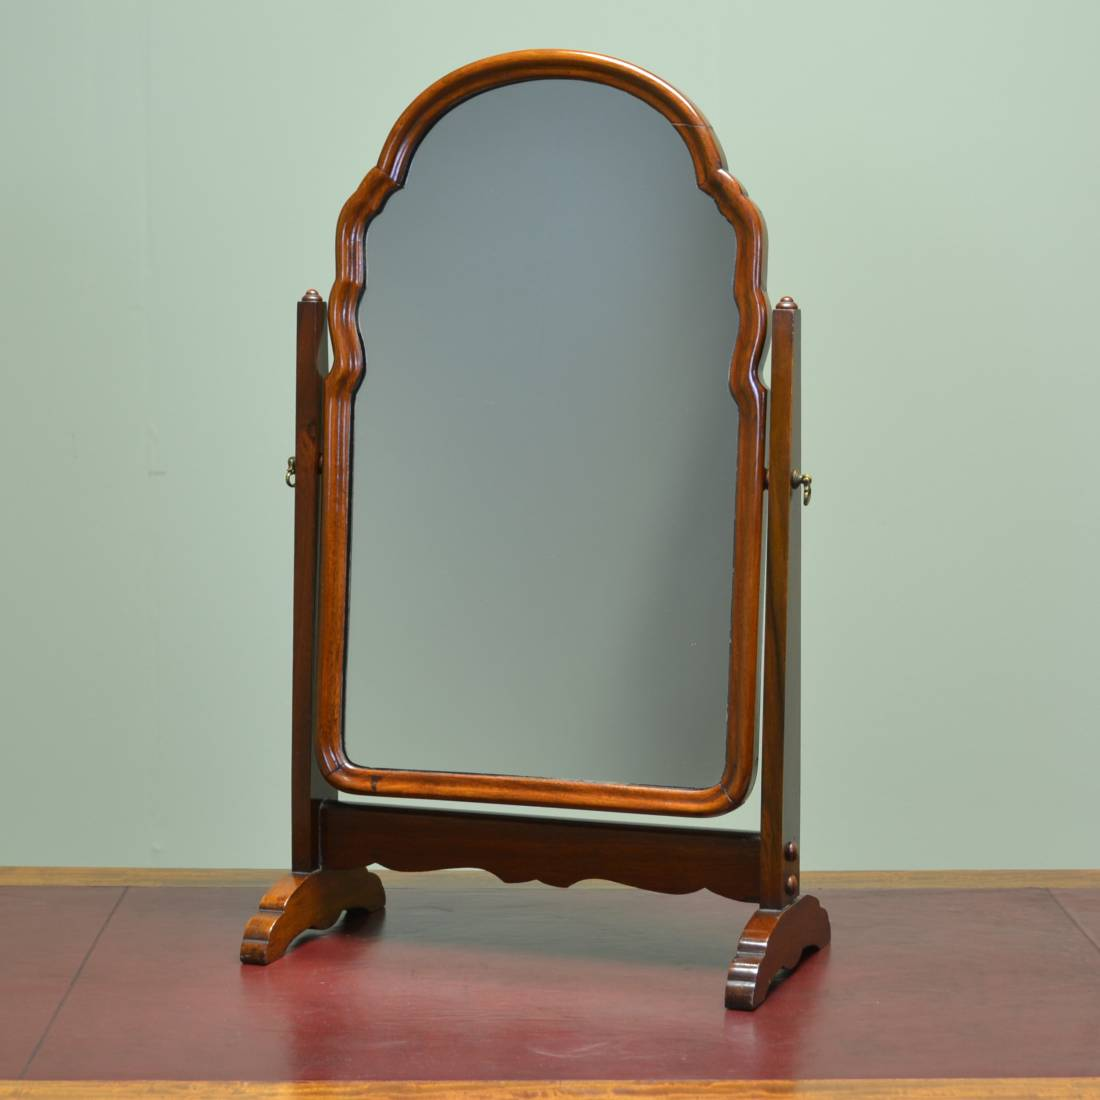 Antique dressing table with mirror - Small Elegant Edwardian Walnut Antique Dressing Table Mirror